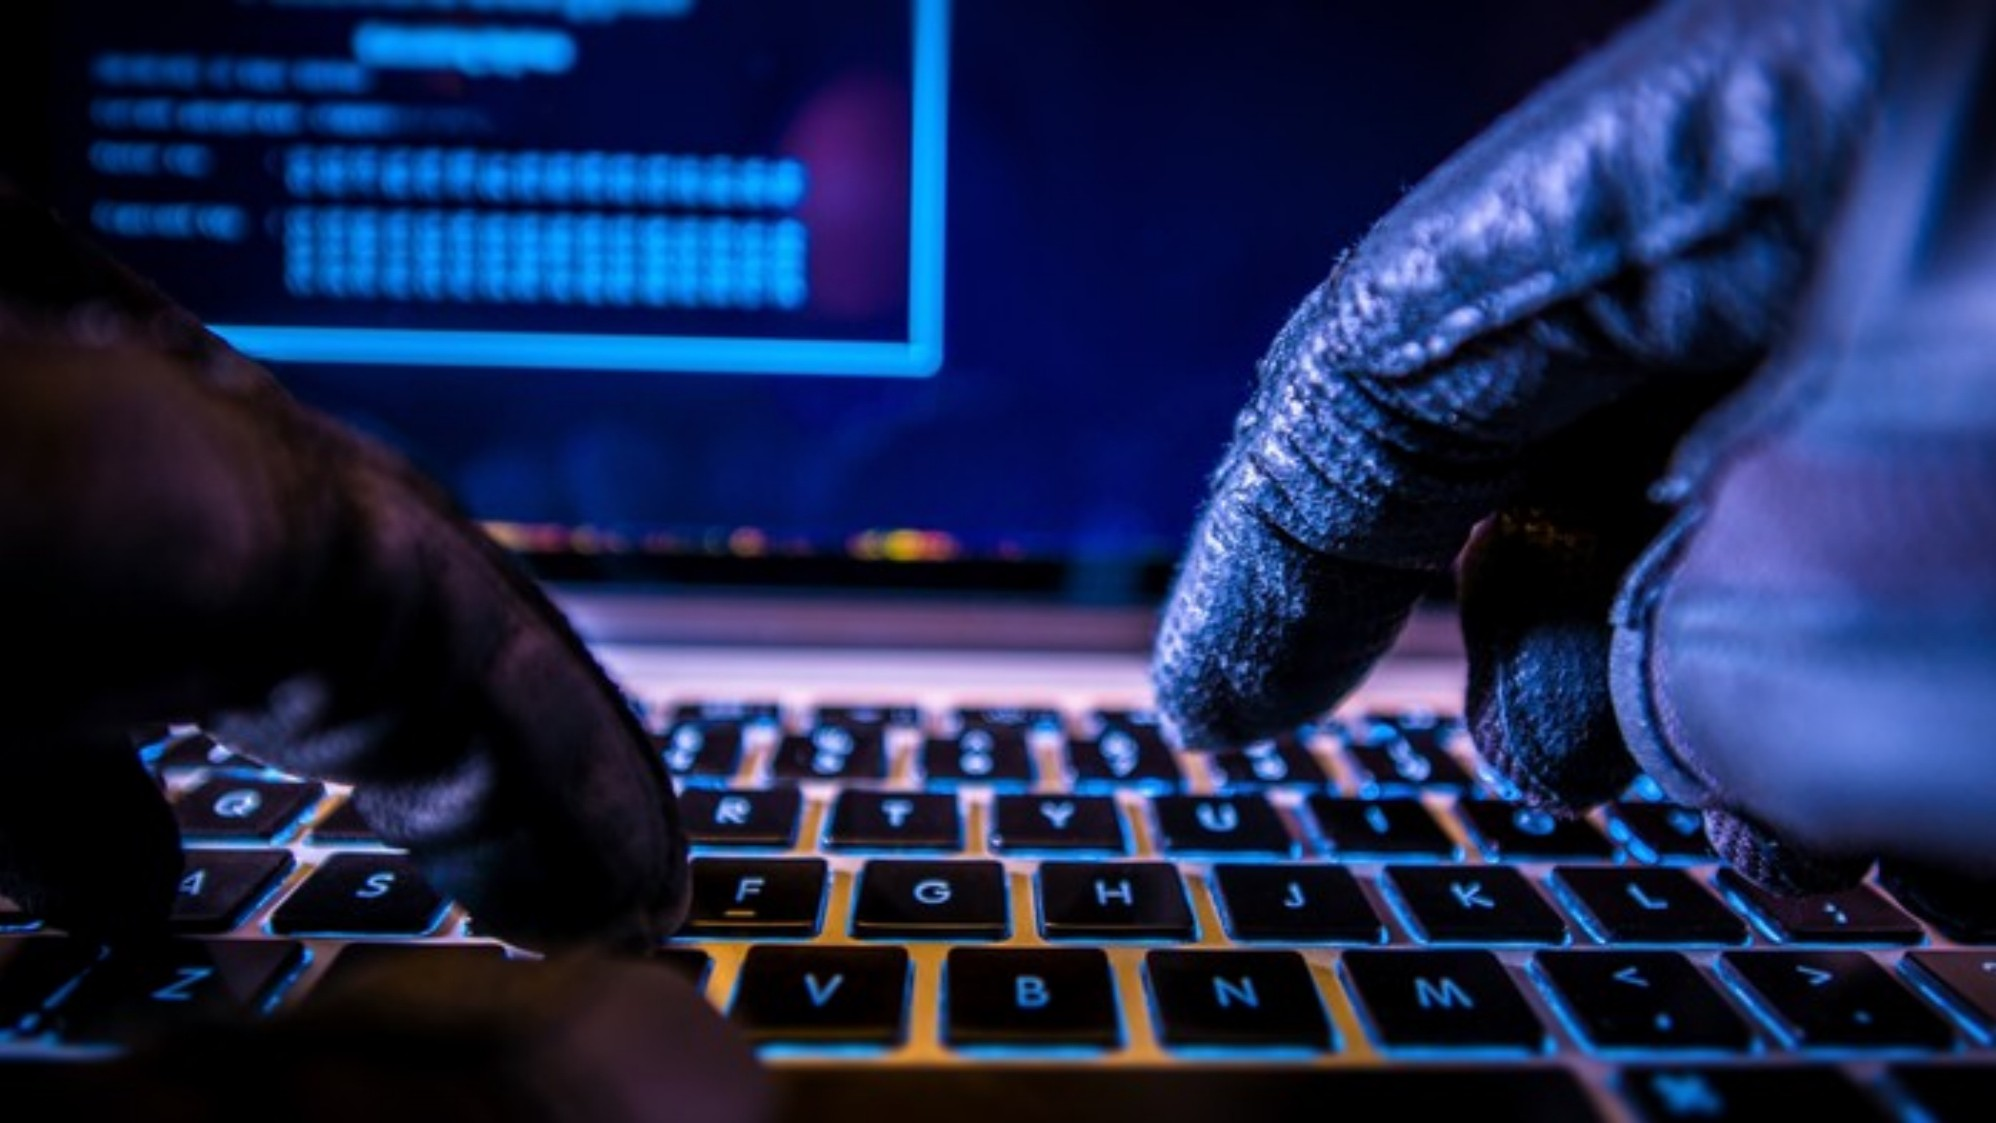 Think Stock Photos of Hackers Are Cheesy? Blame This Guy